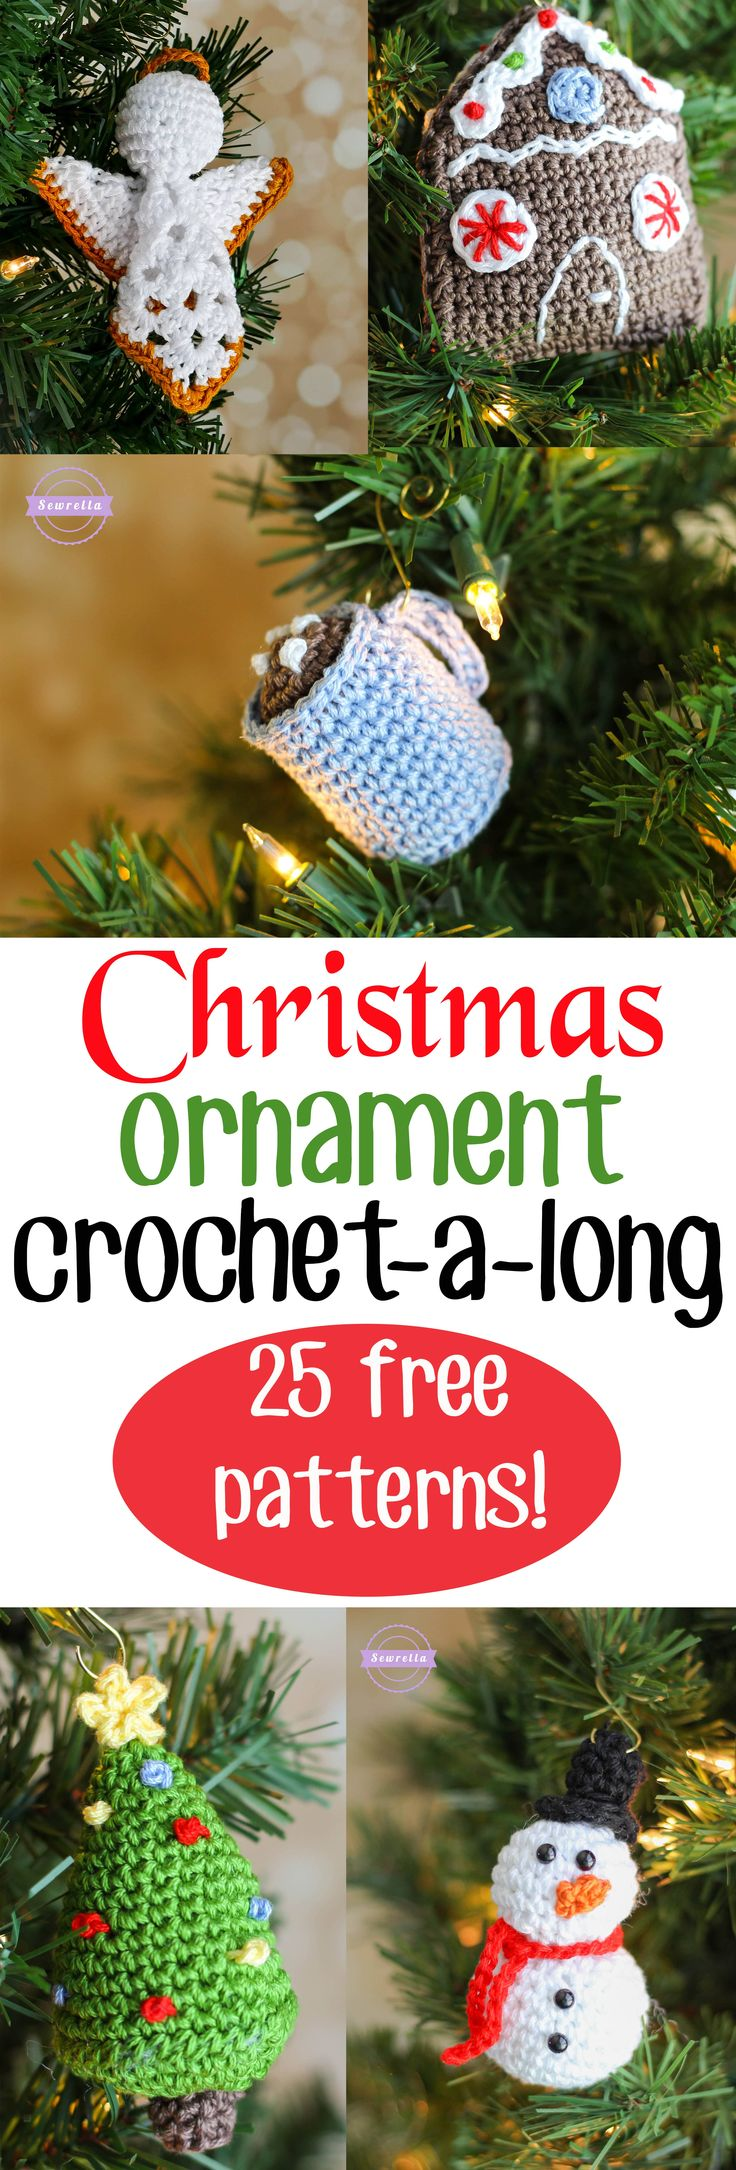 Superschattige Kerst Ornamentjes om je boom en huis te versieren.25 Days of Christmas Traditions Ornament CAL | 25 FREE Crochet Patterns from Sewrella